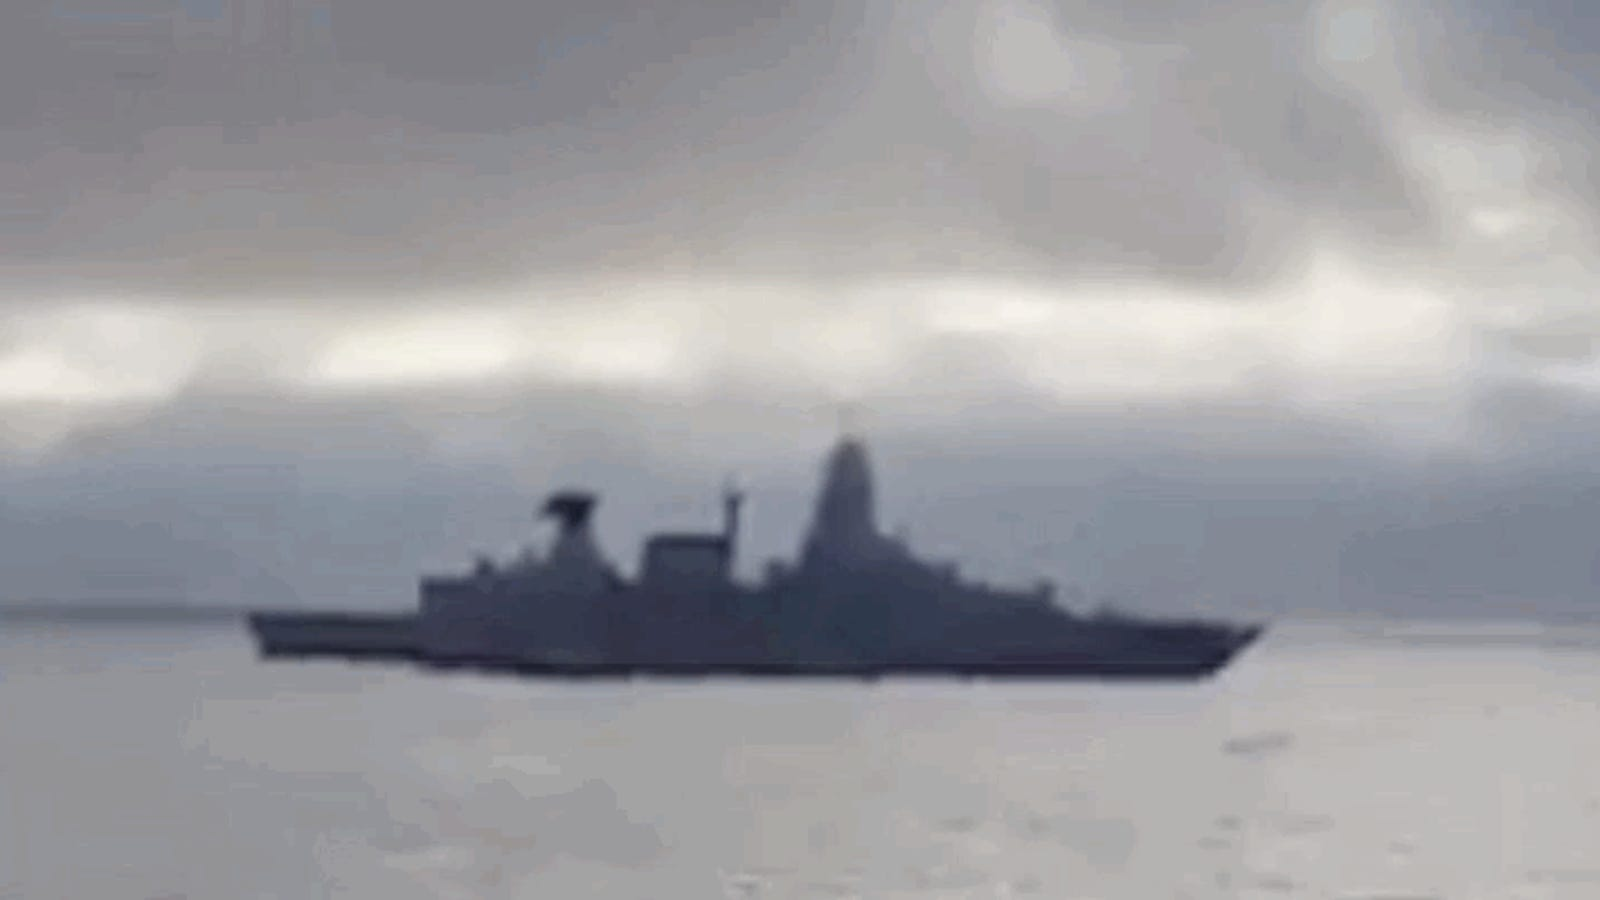 Here's Video Of A Missile Exploding Onboard A German Frigate Last Week